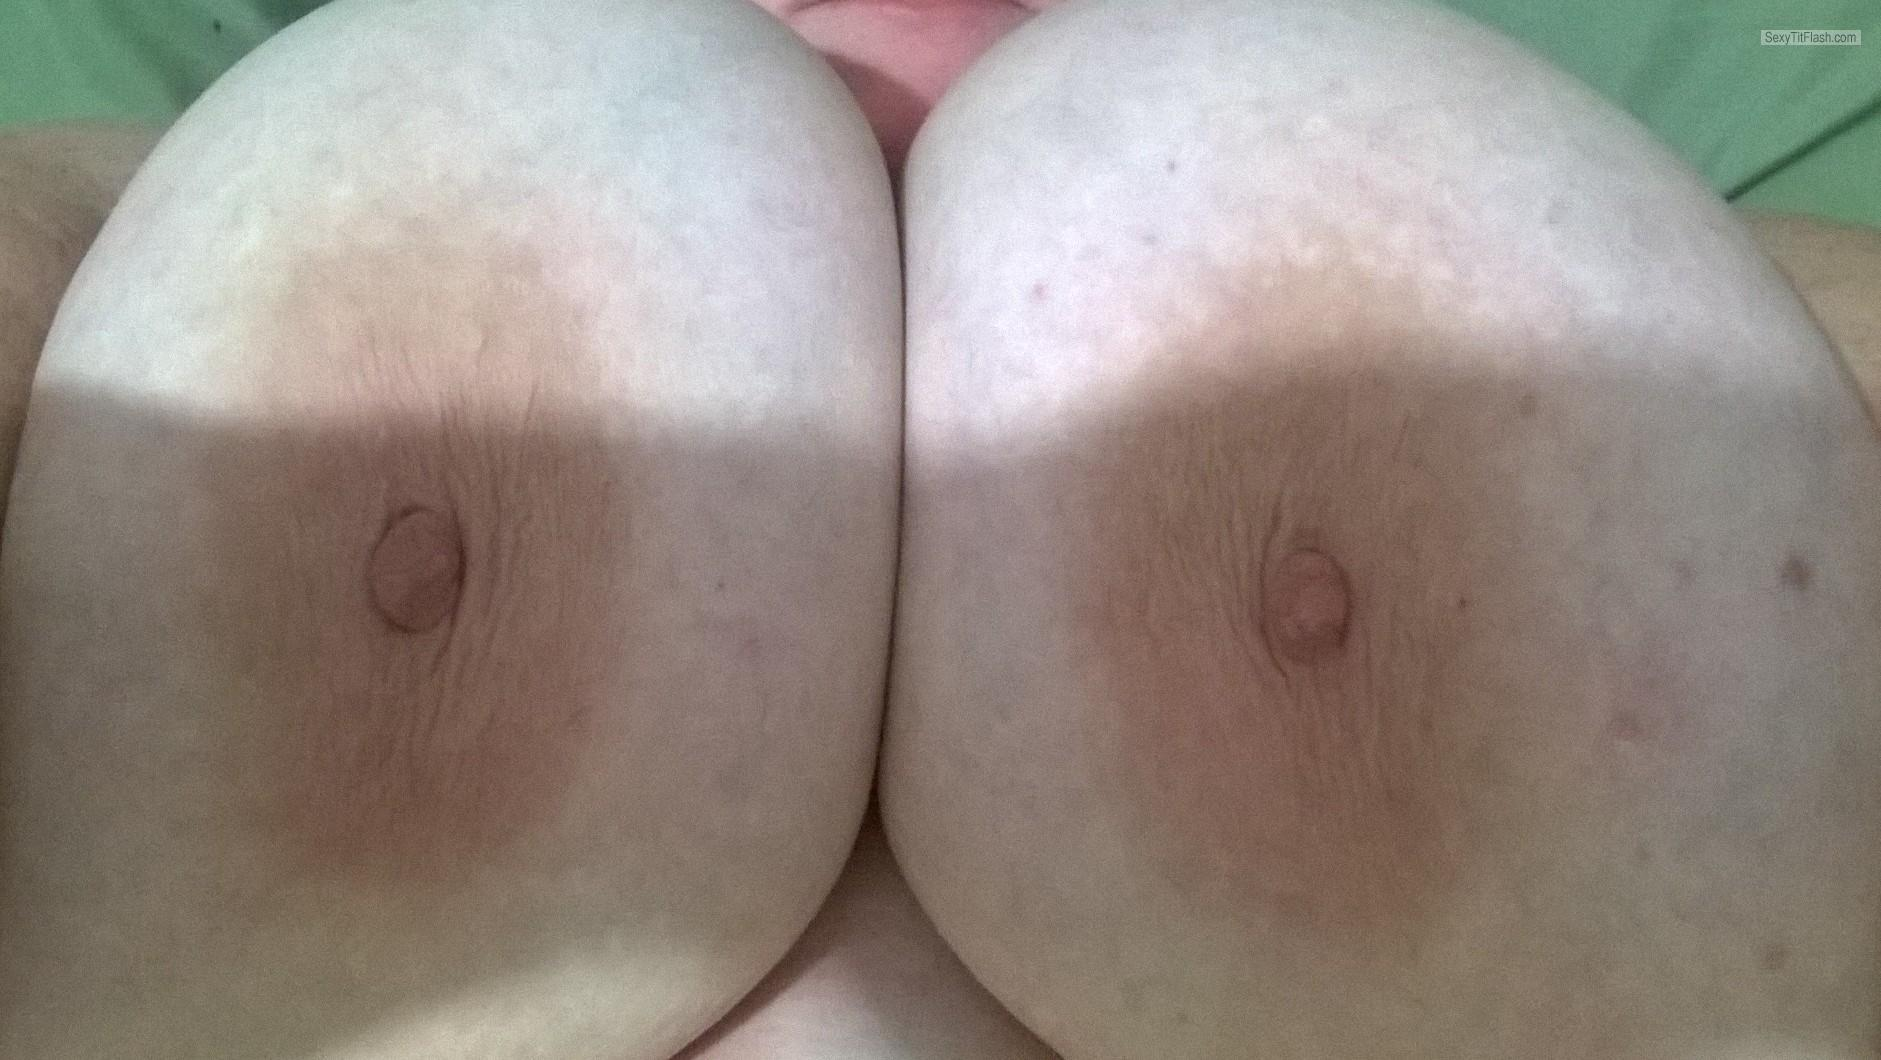 Extremely big Tits Of My Girlfriend My Gfs Big 46 Ddd